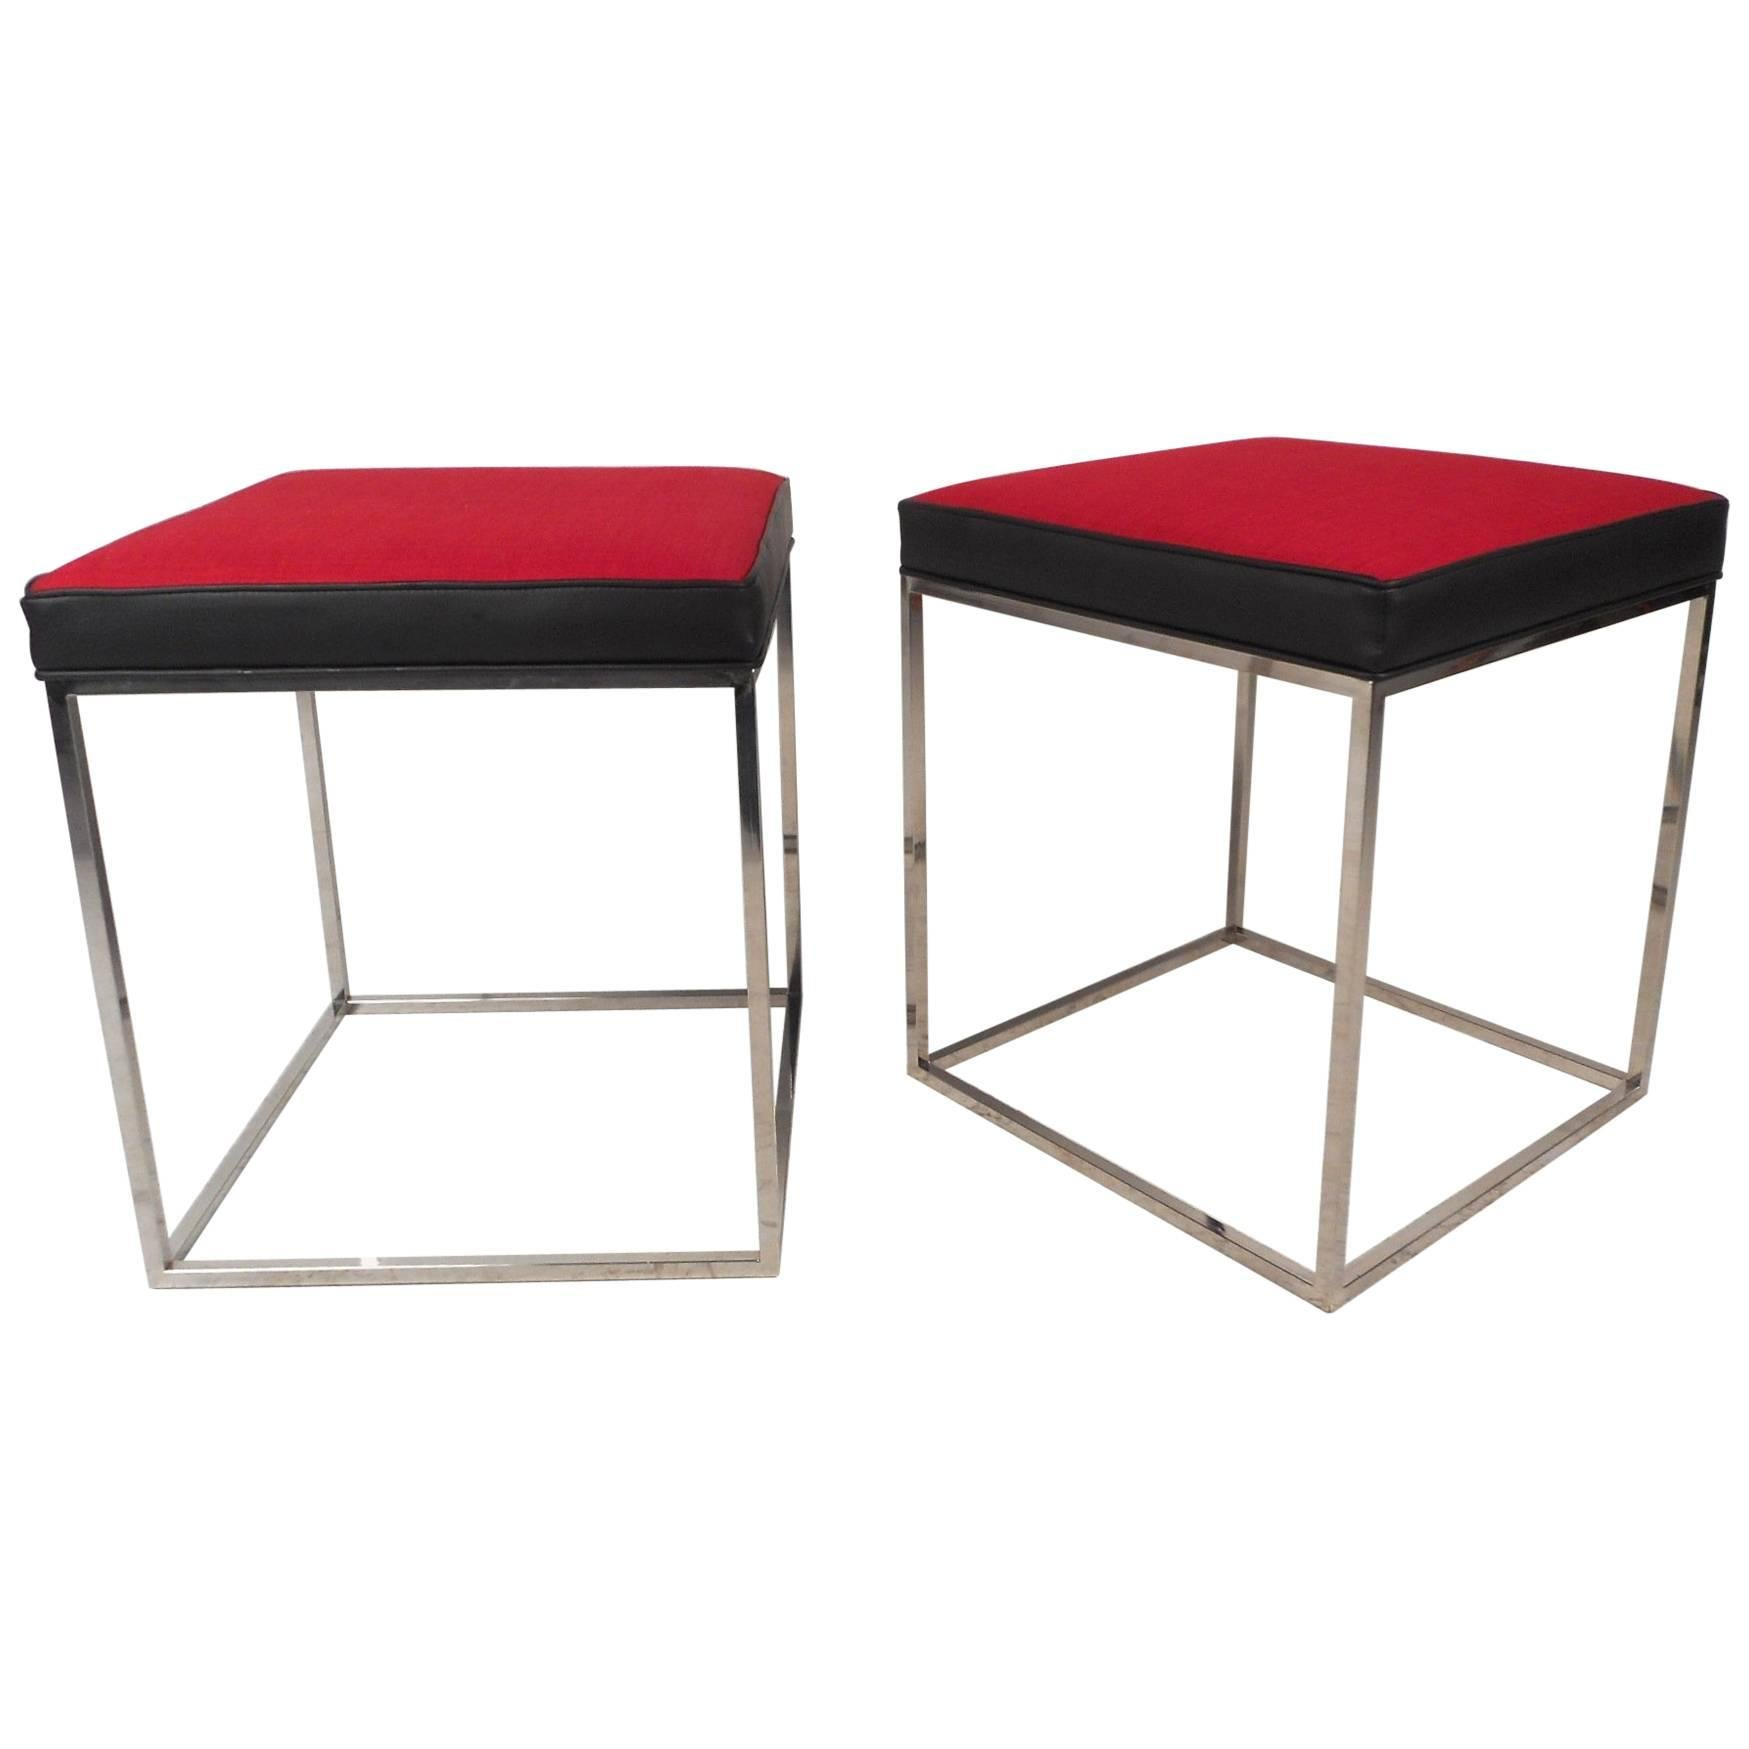 Pair of Contemporary Modern Stools